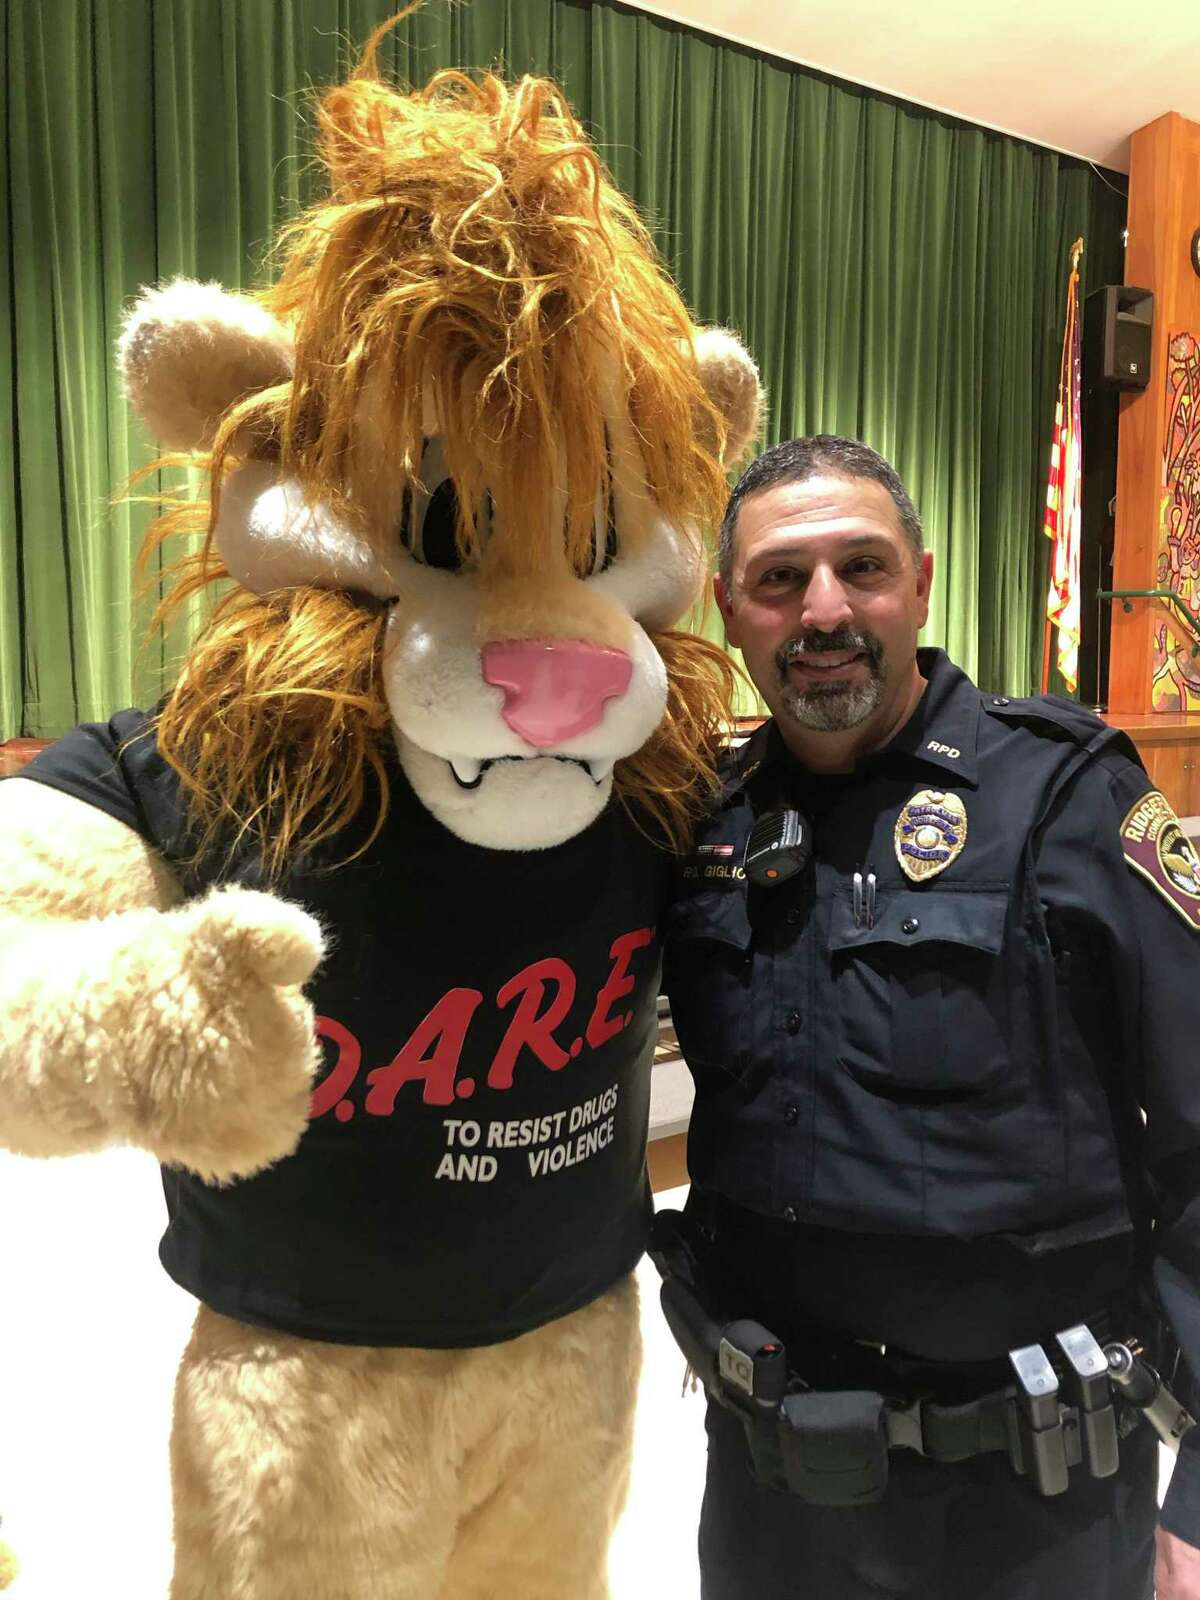 DARE drug education classes are among the duties Mark Giglio handles as a school resource officer.